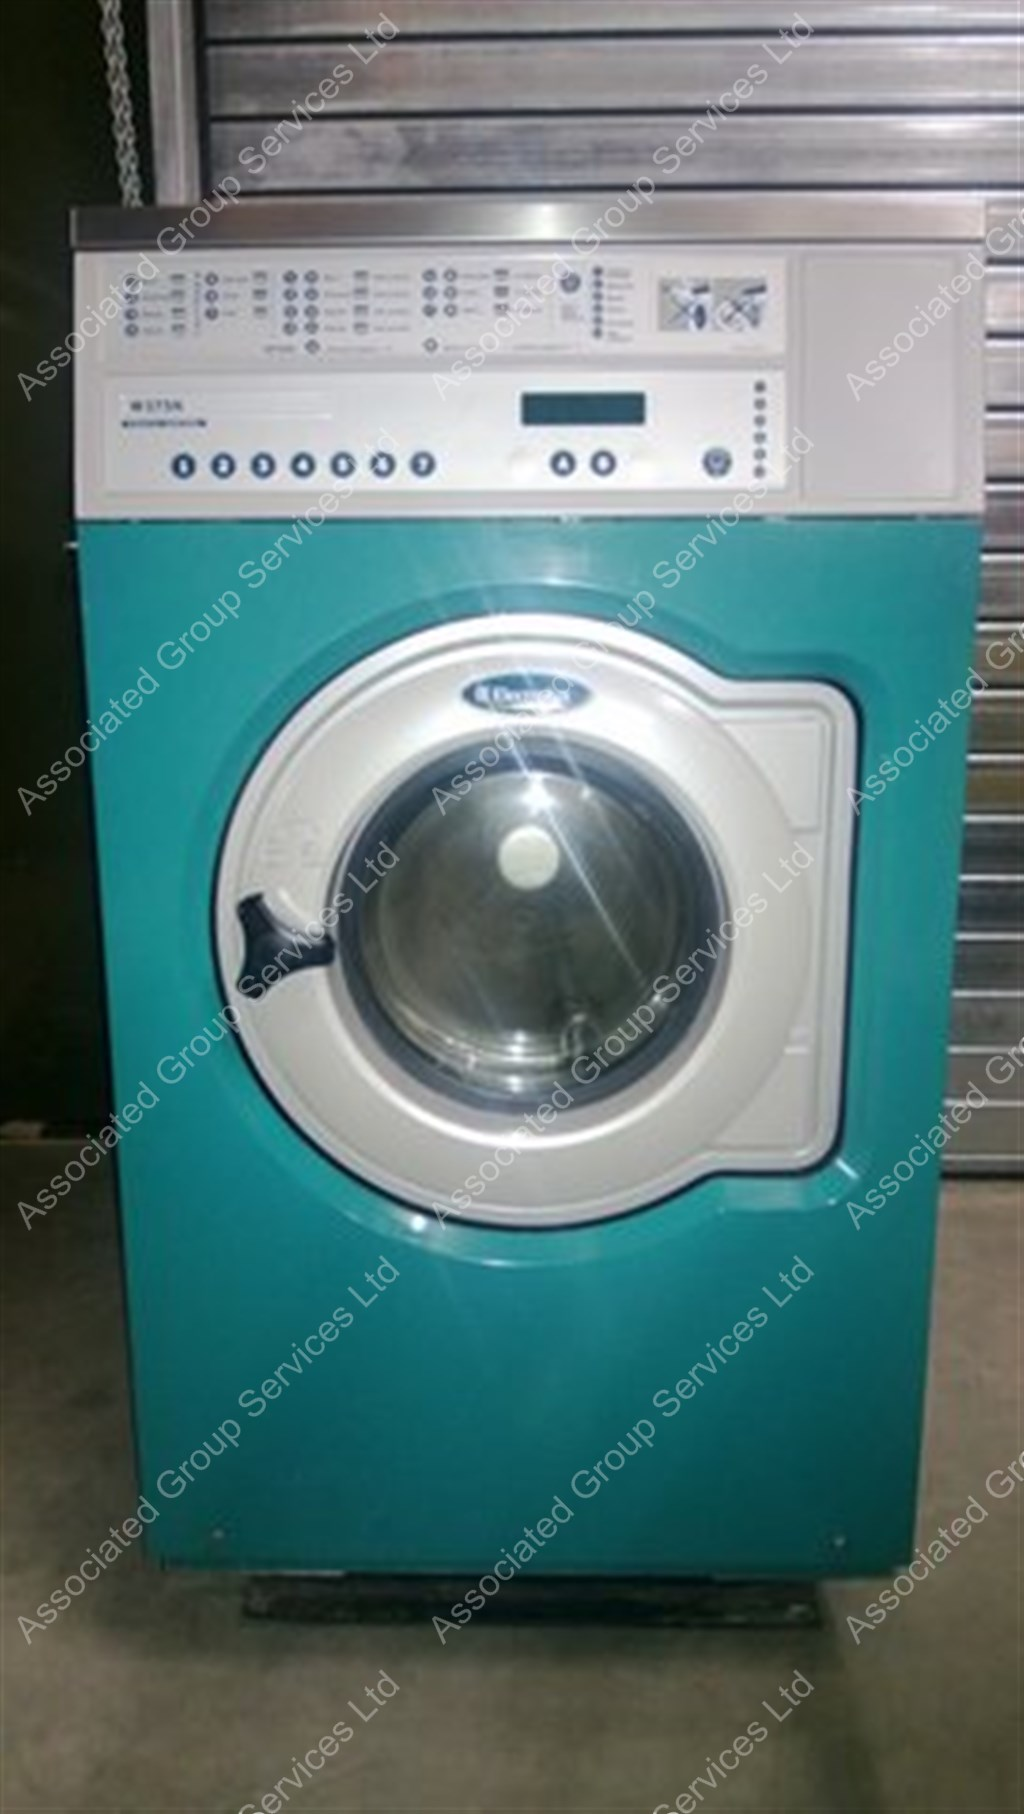 washers ags limited rh agslimited co uk Electrolux Appliance Manuals Electrolux Washer Machine